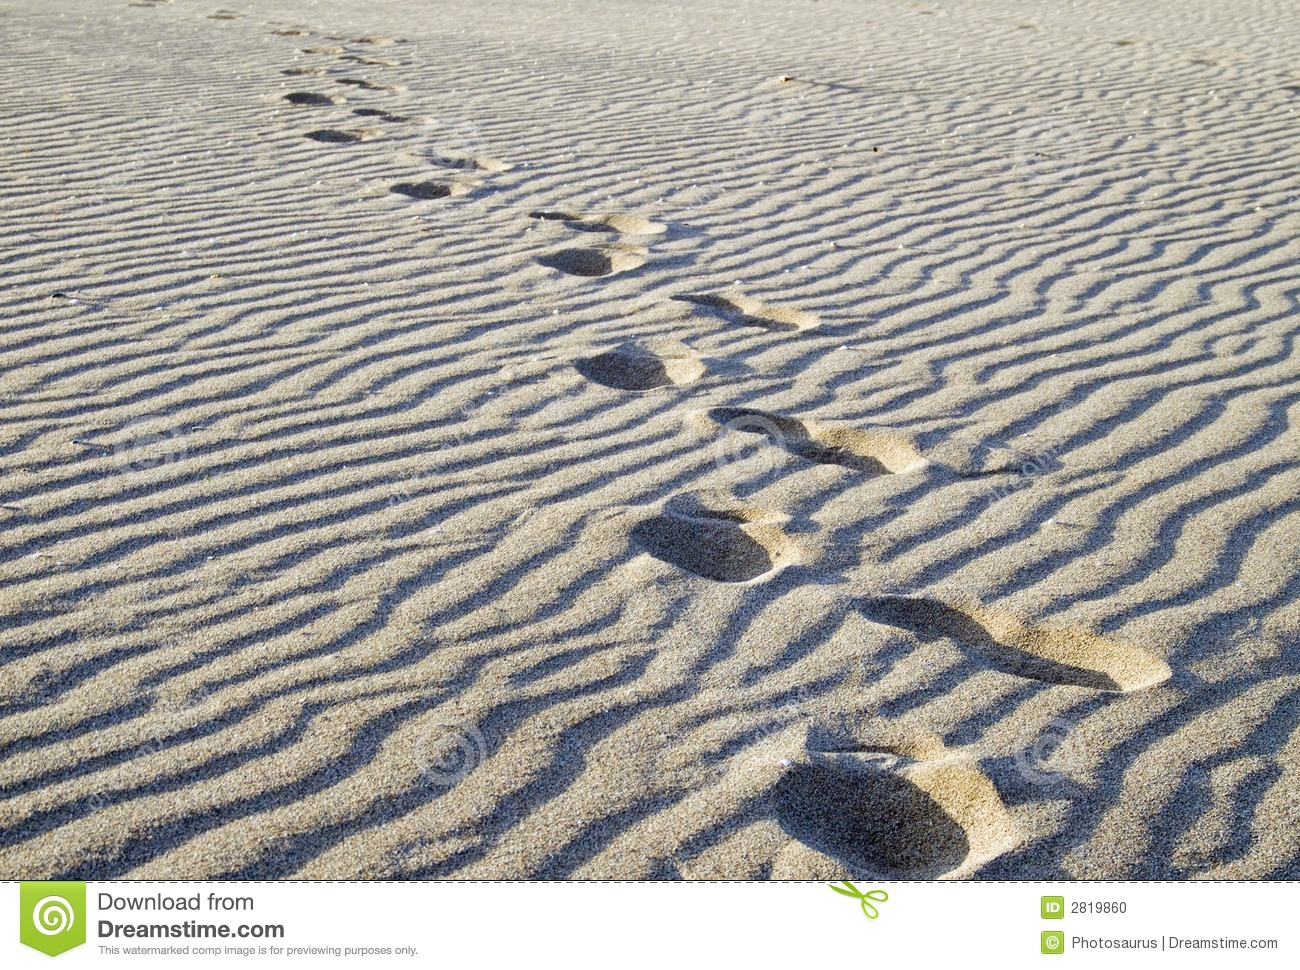 Steps in the sand